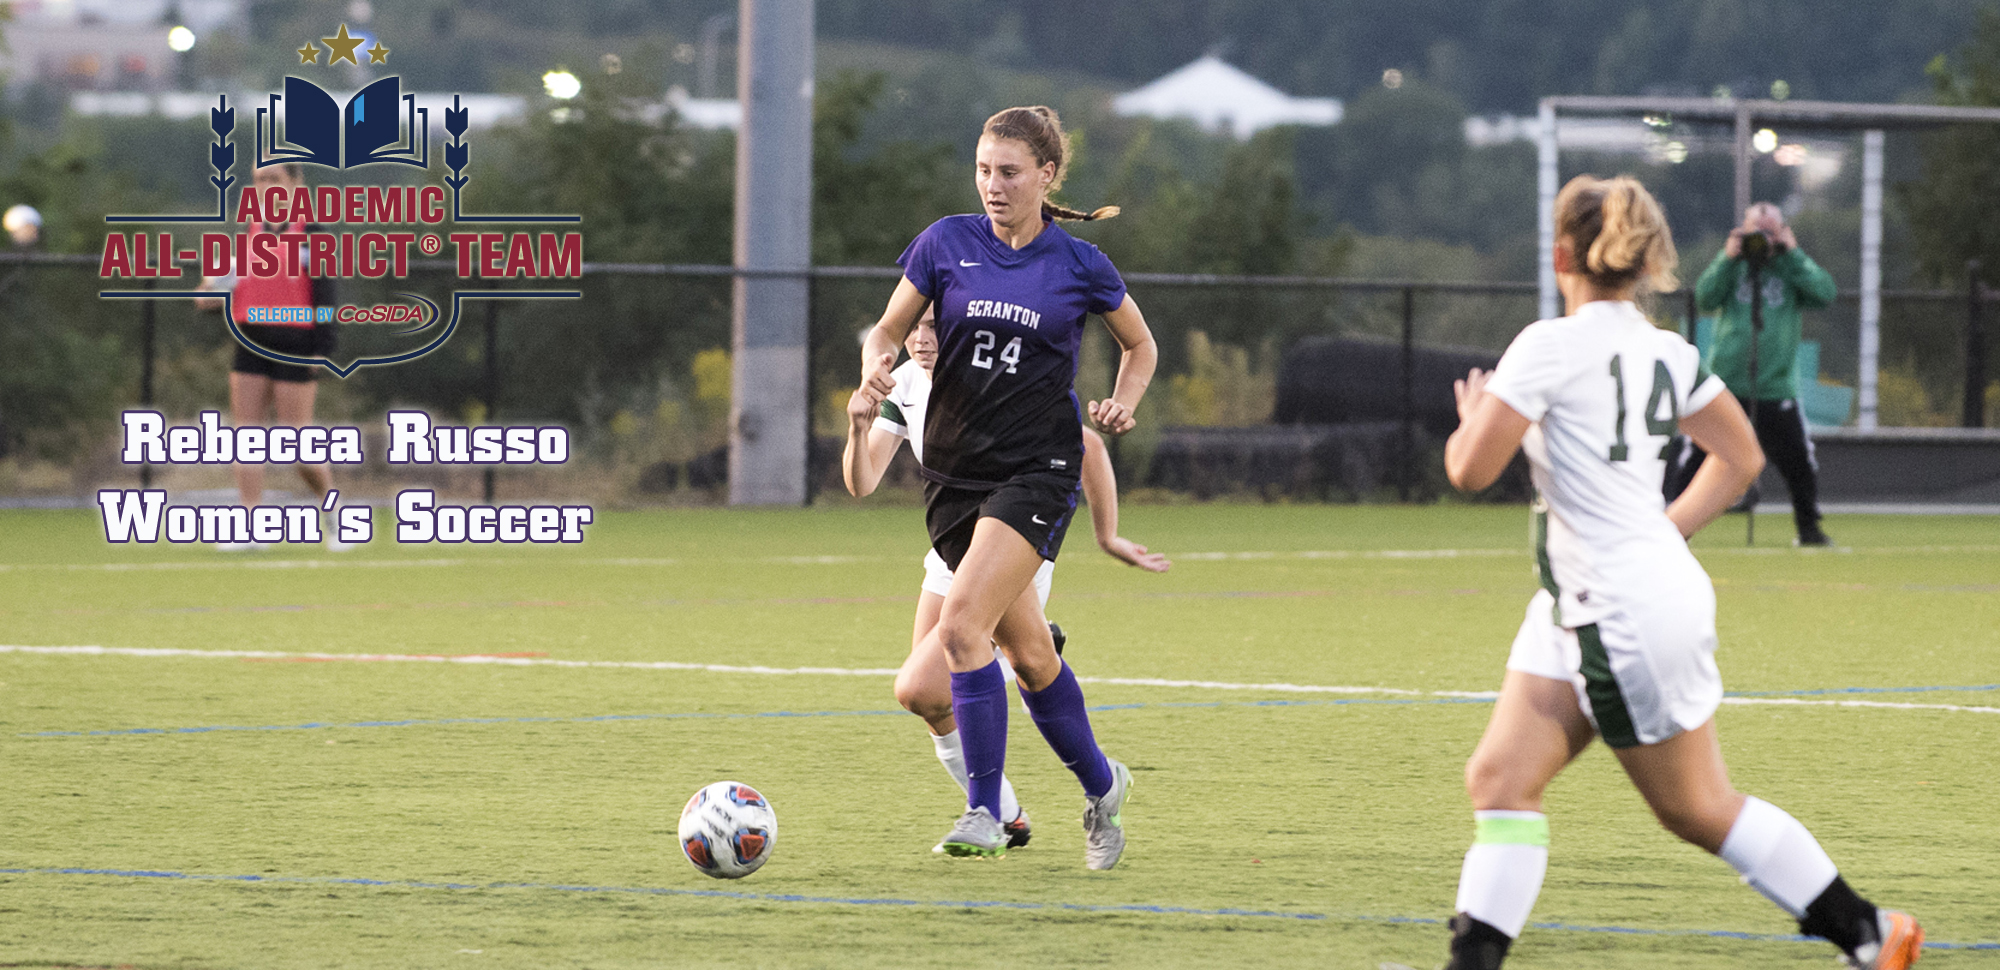 Women's Soccer's Russo Named CoSIDA Academic All-District